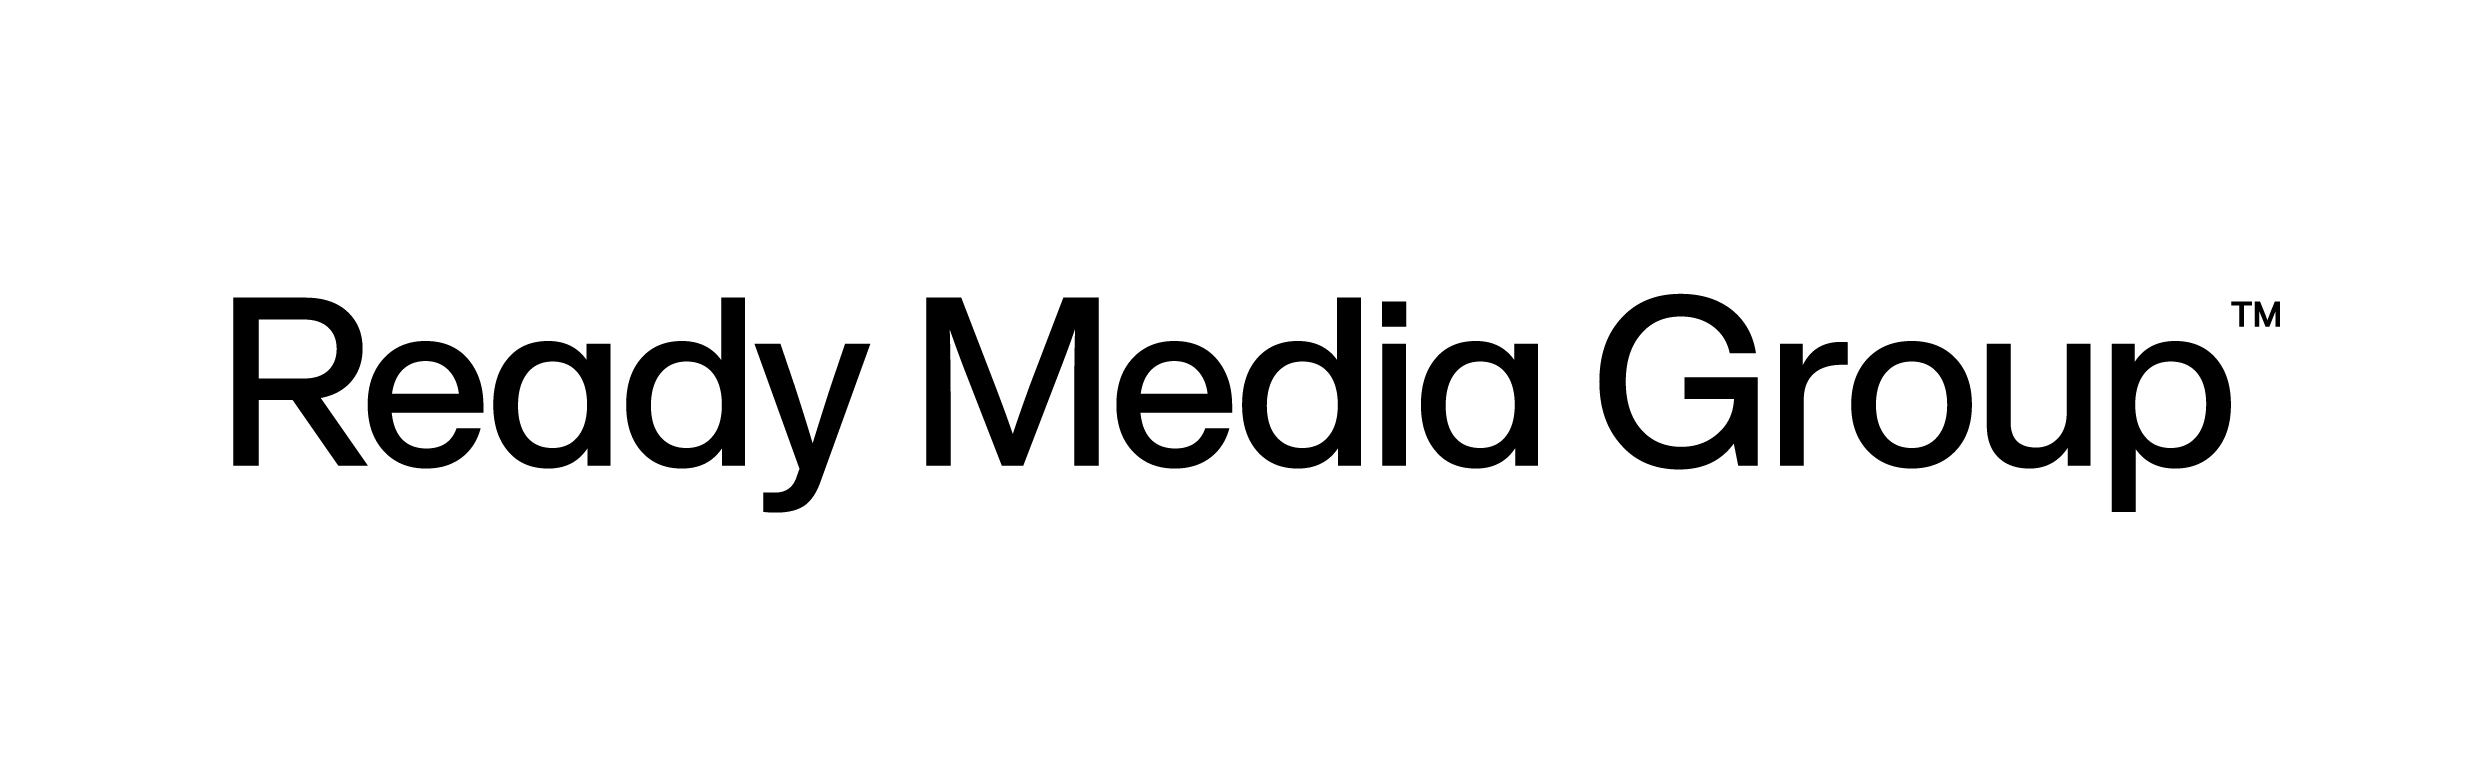 Ready Media Group appoints new CFO to accelerate rapid growth